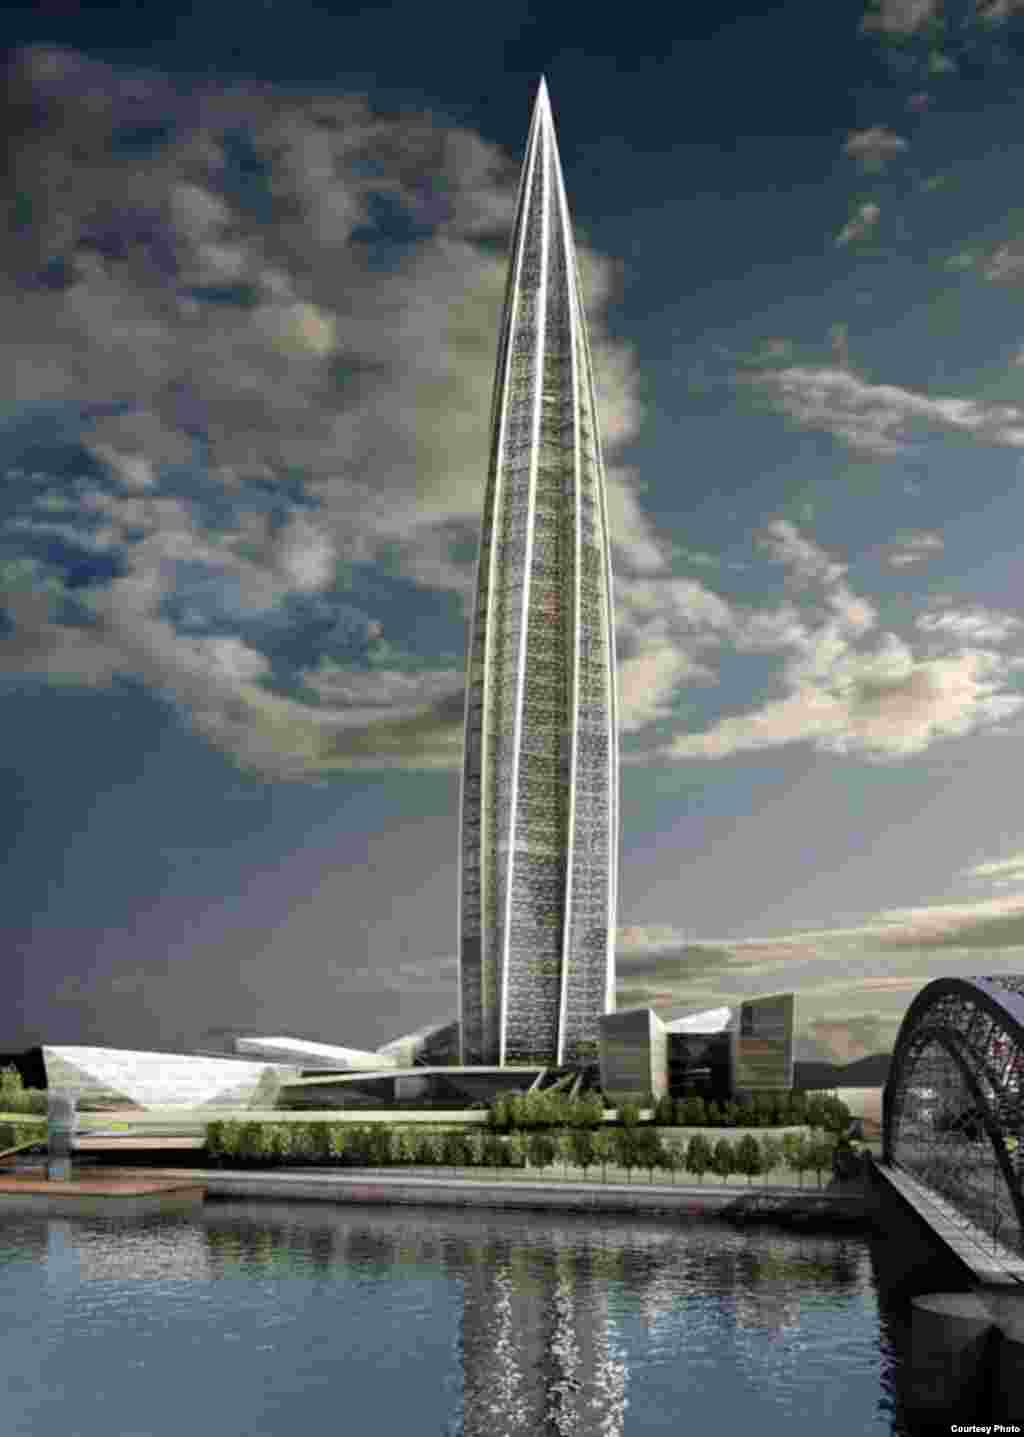 The new building should rise to a height of 426 meters and comprise 330,000 square meters of internal space.